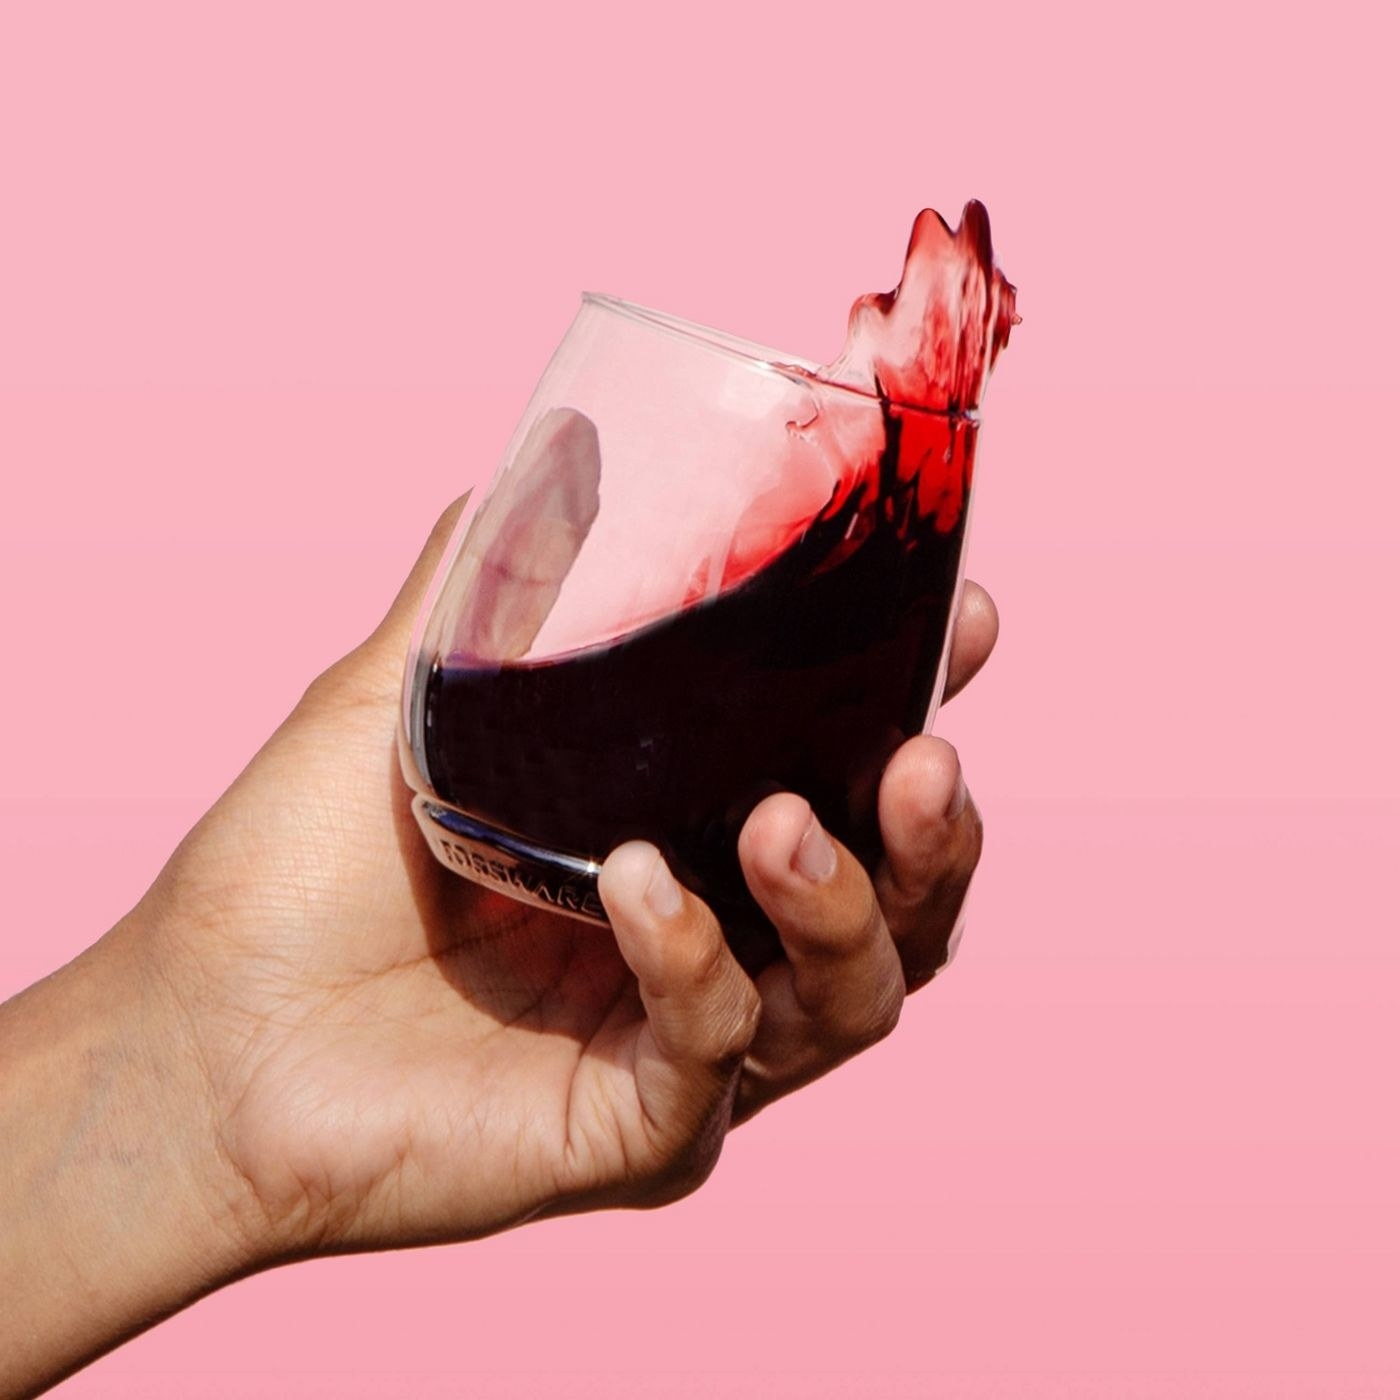 A model's hand swishing some wine in a stemless glass